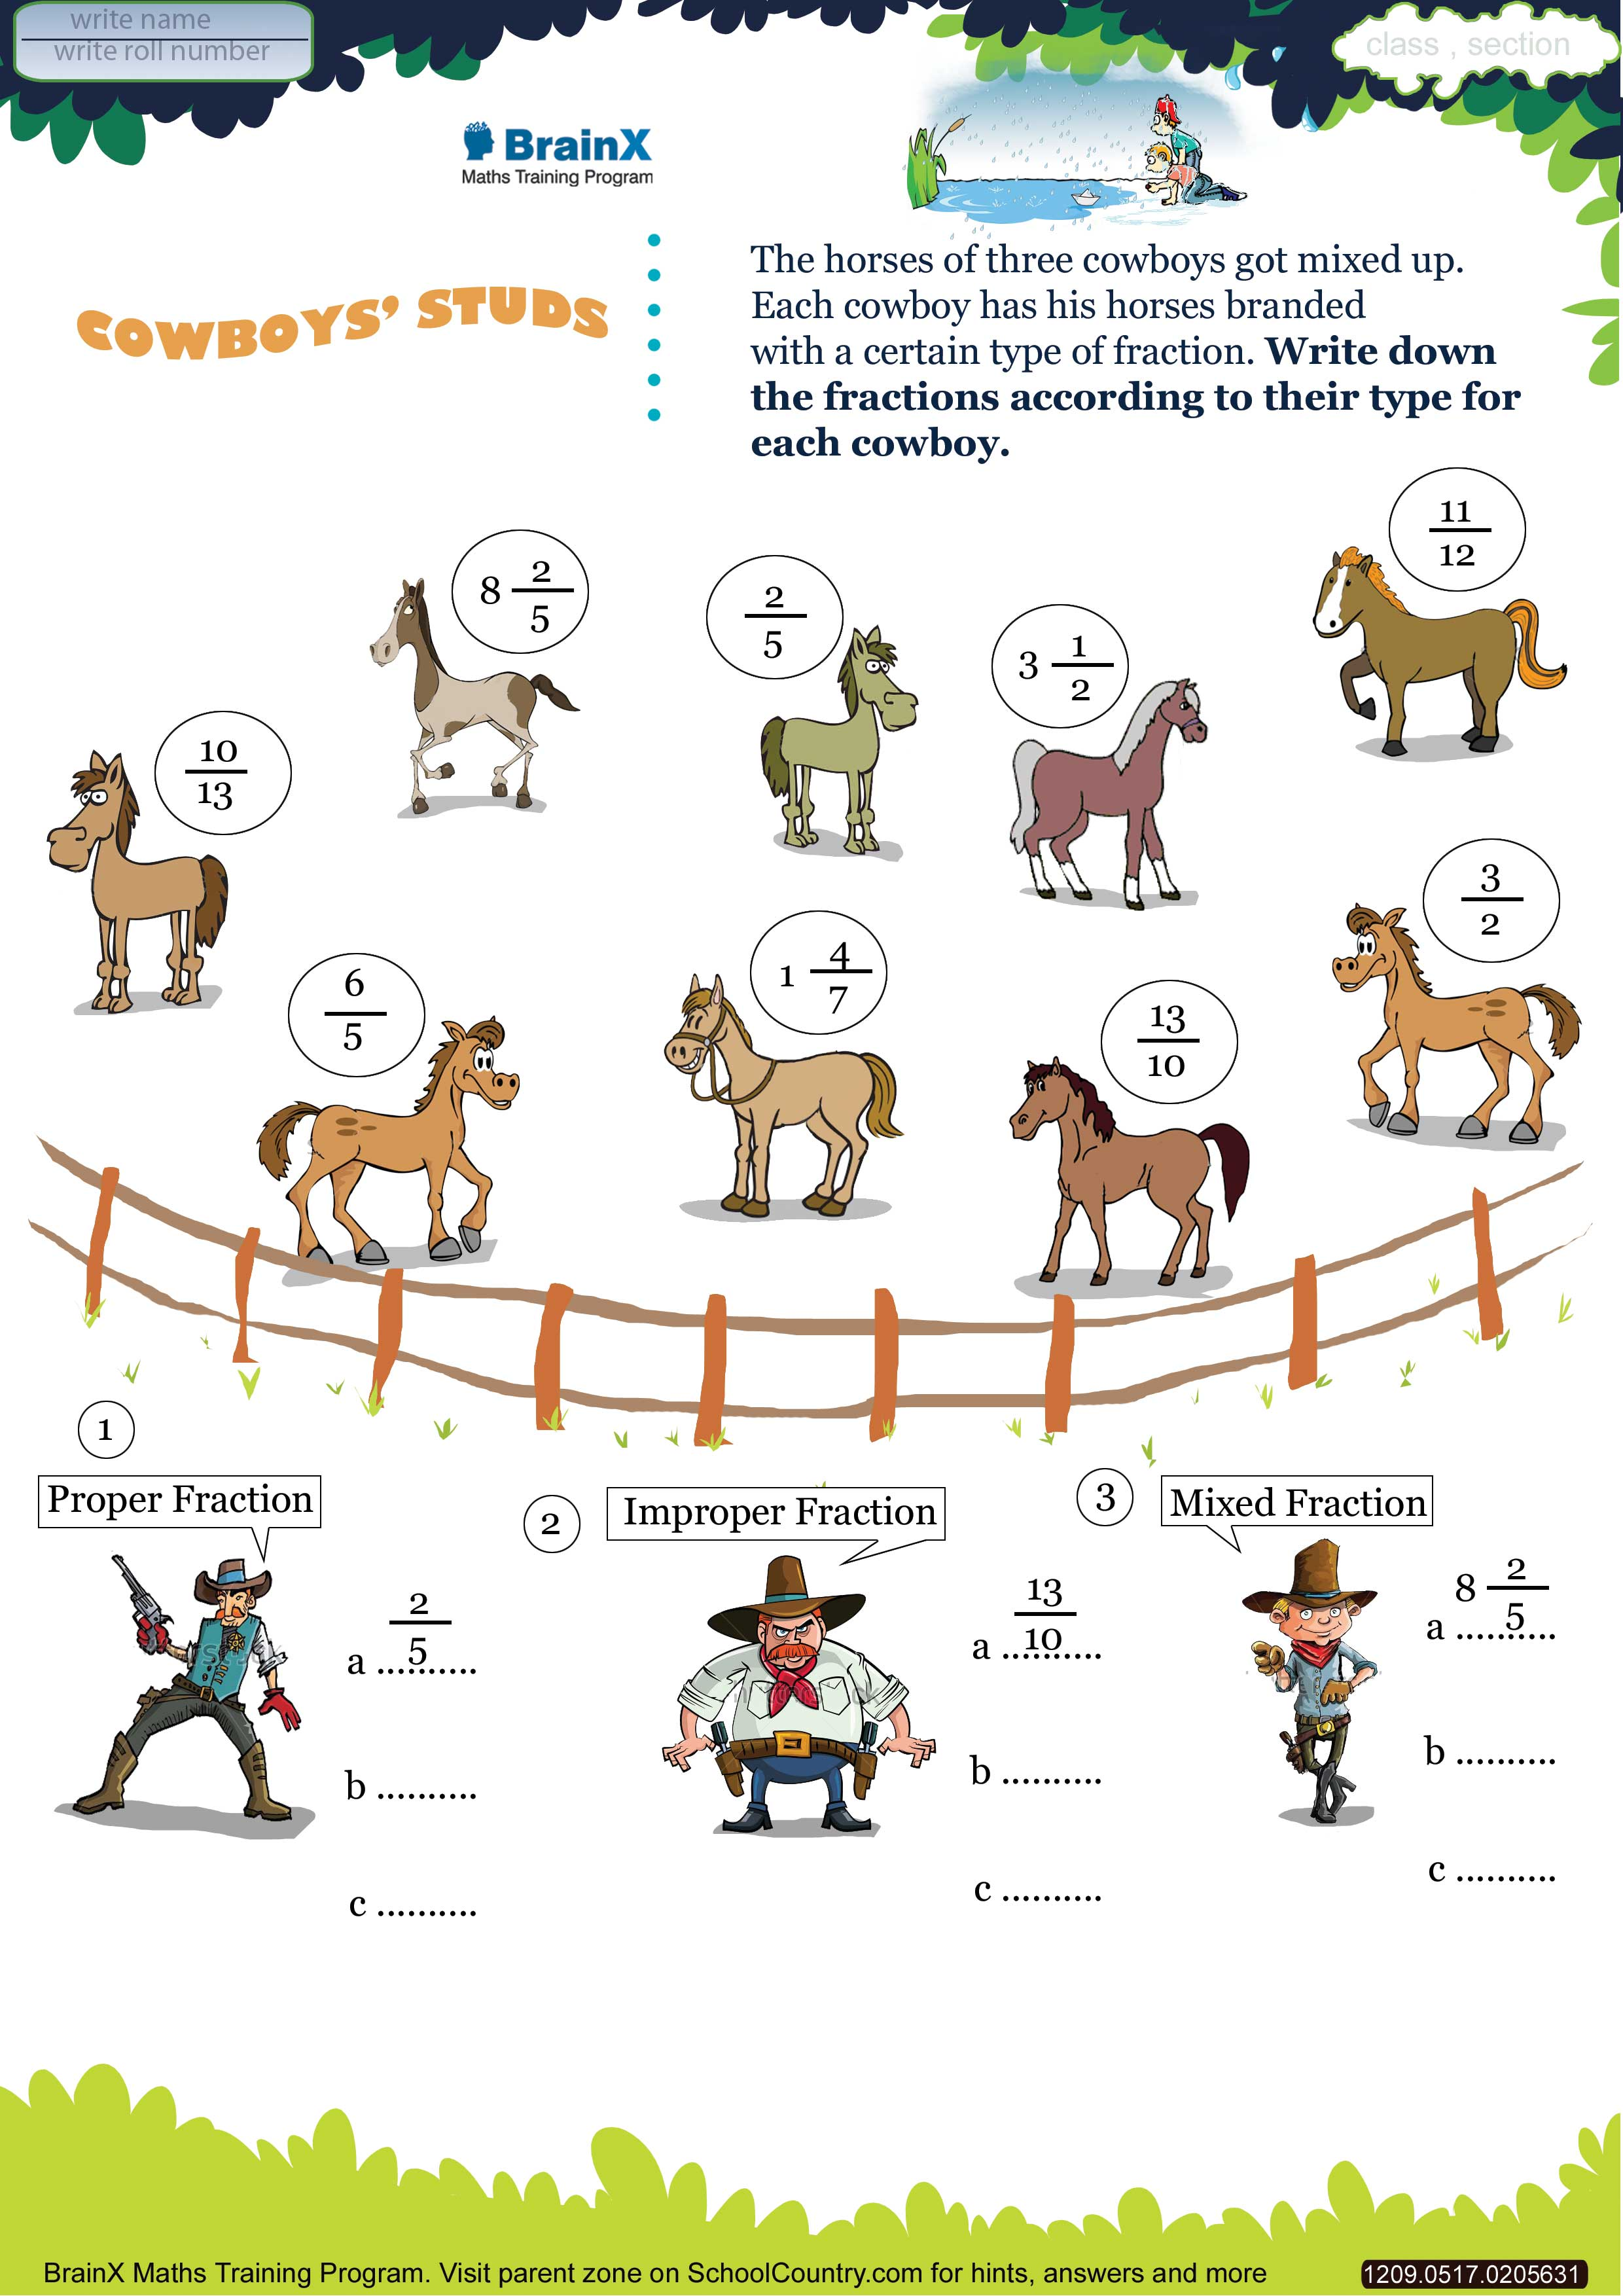 Printable Fractions Math olympiad Worksheet Cowboy studs – Math Olympiad Worksheets